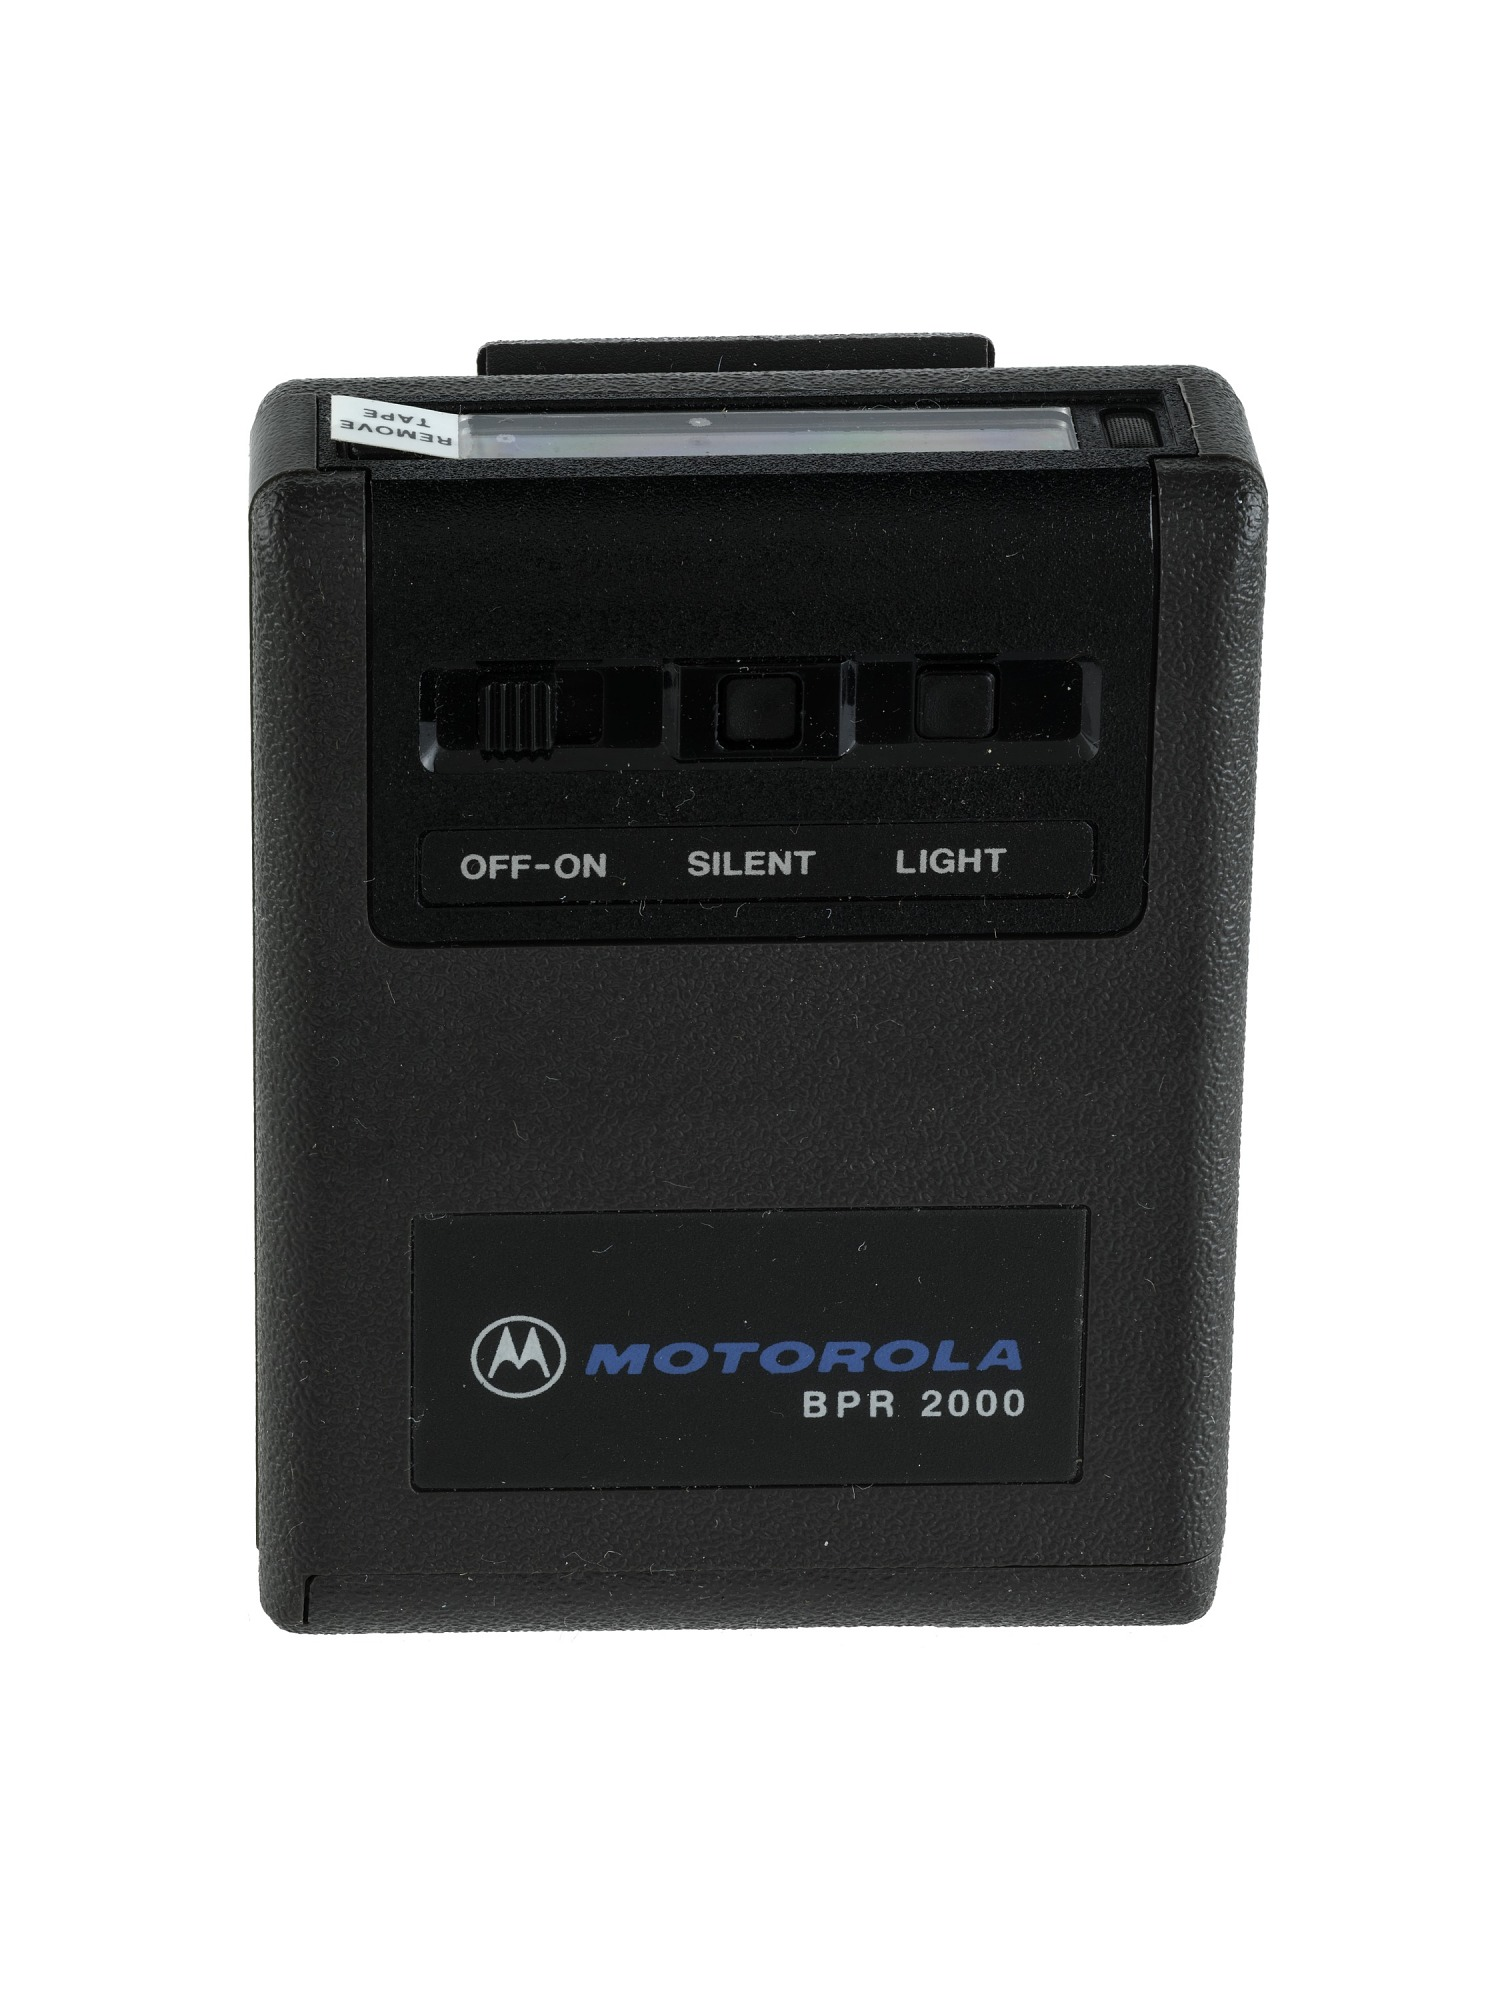 Black Motorola produced this BPR 2000 model pager around 1982.